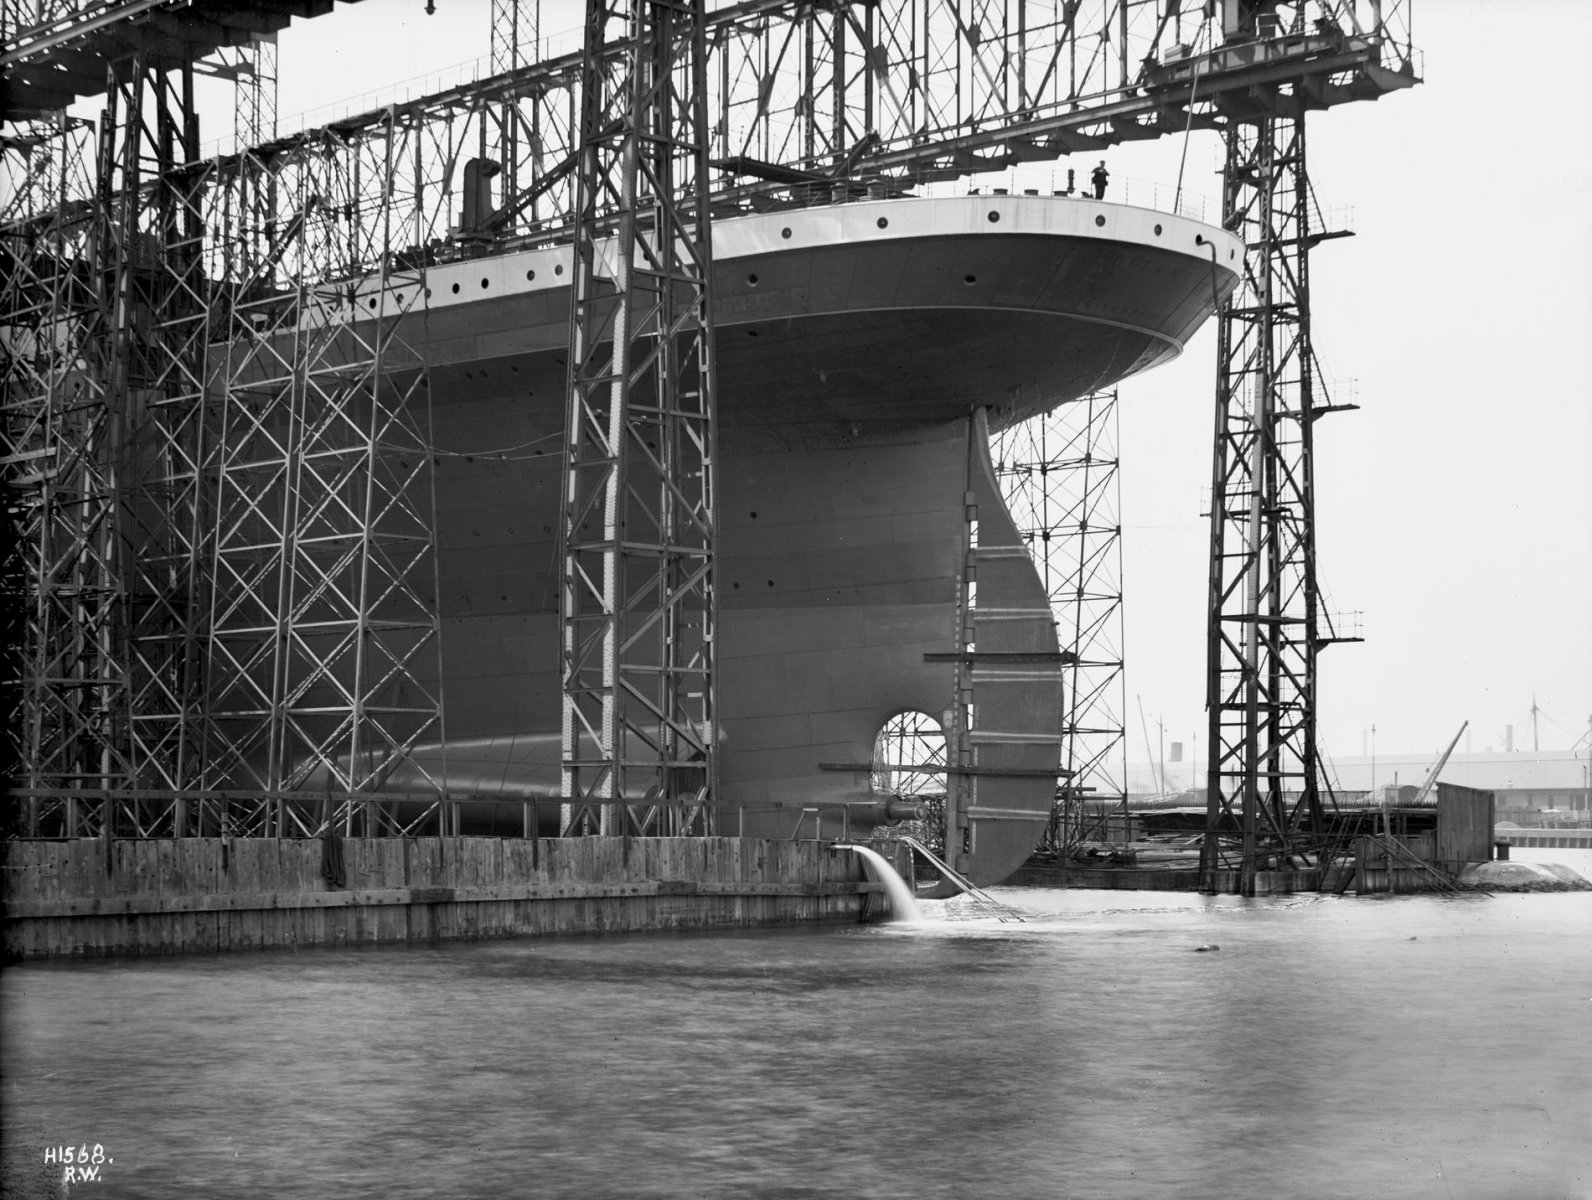 Stern view of the Titanic during its launch.